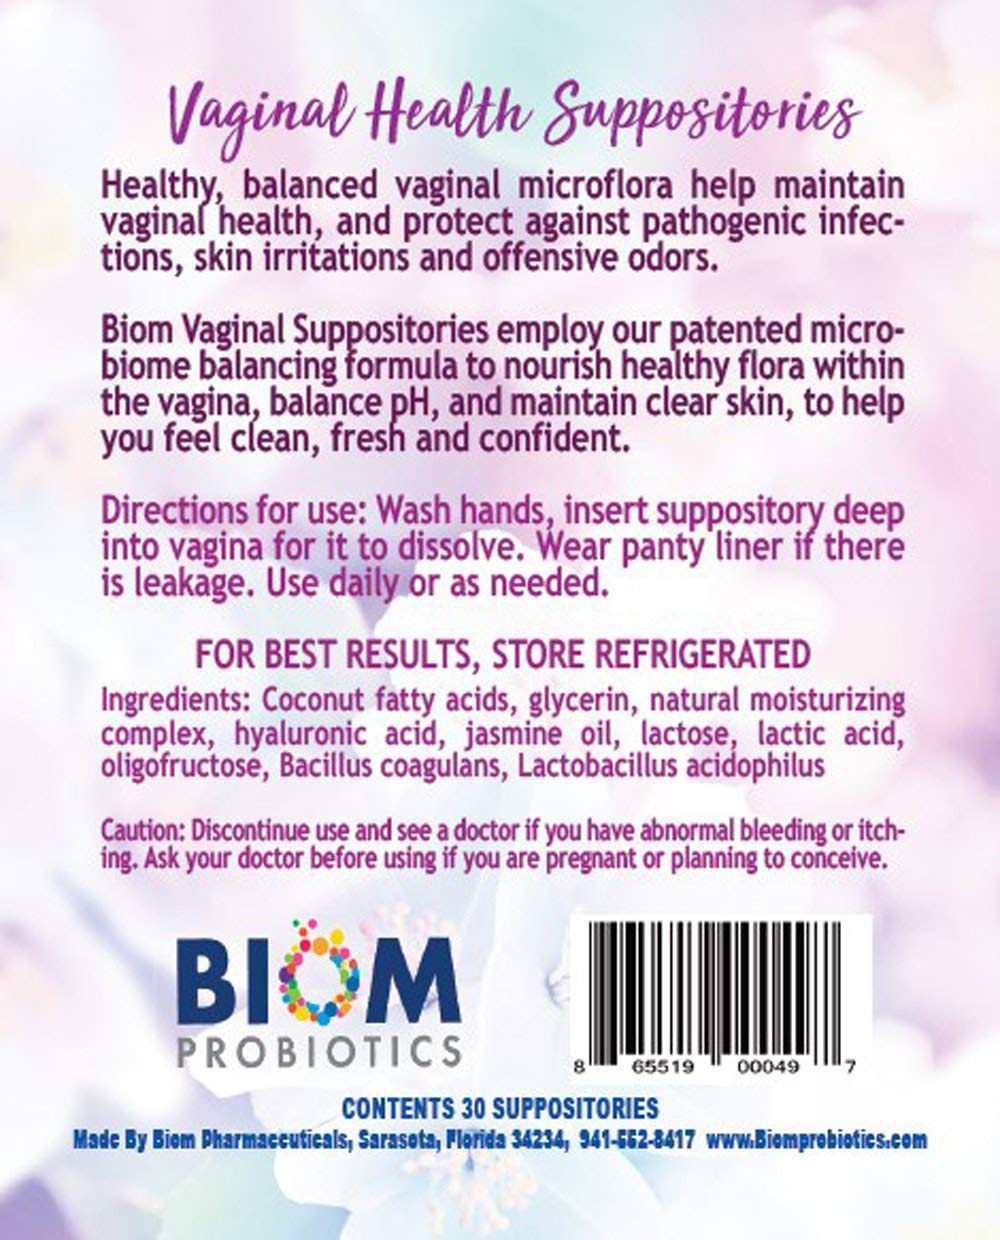 Amazon.com: Biom Vaginal Probiotic Suppository (30): Health & Personal Care